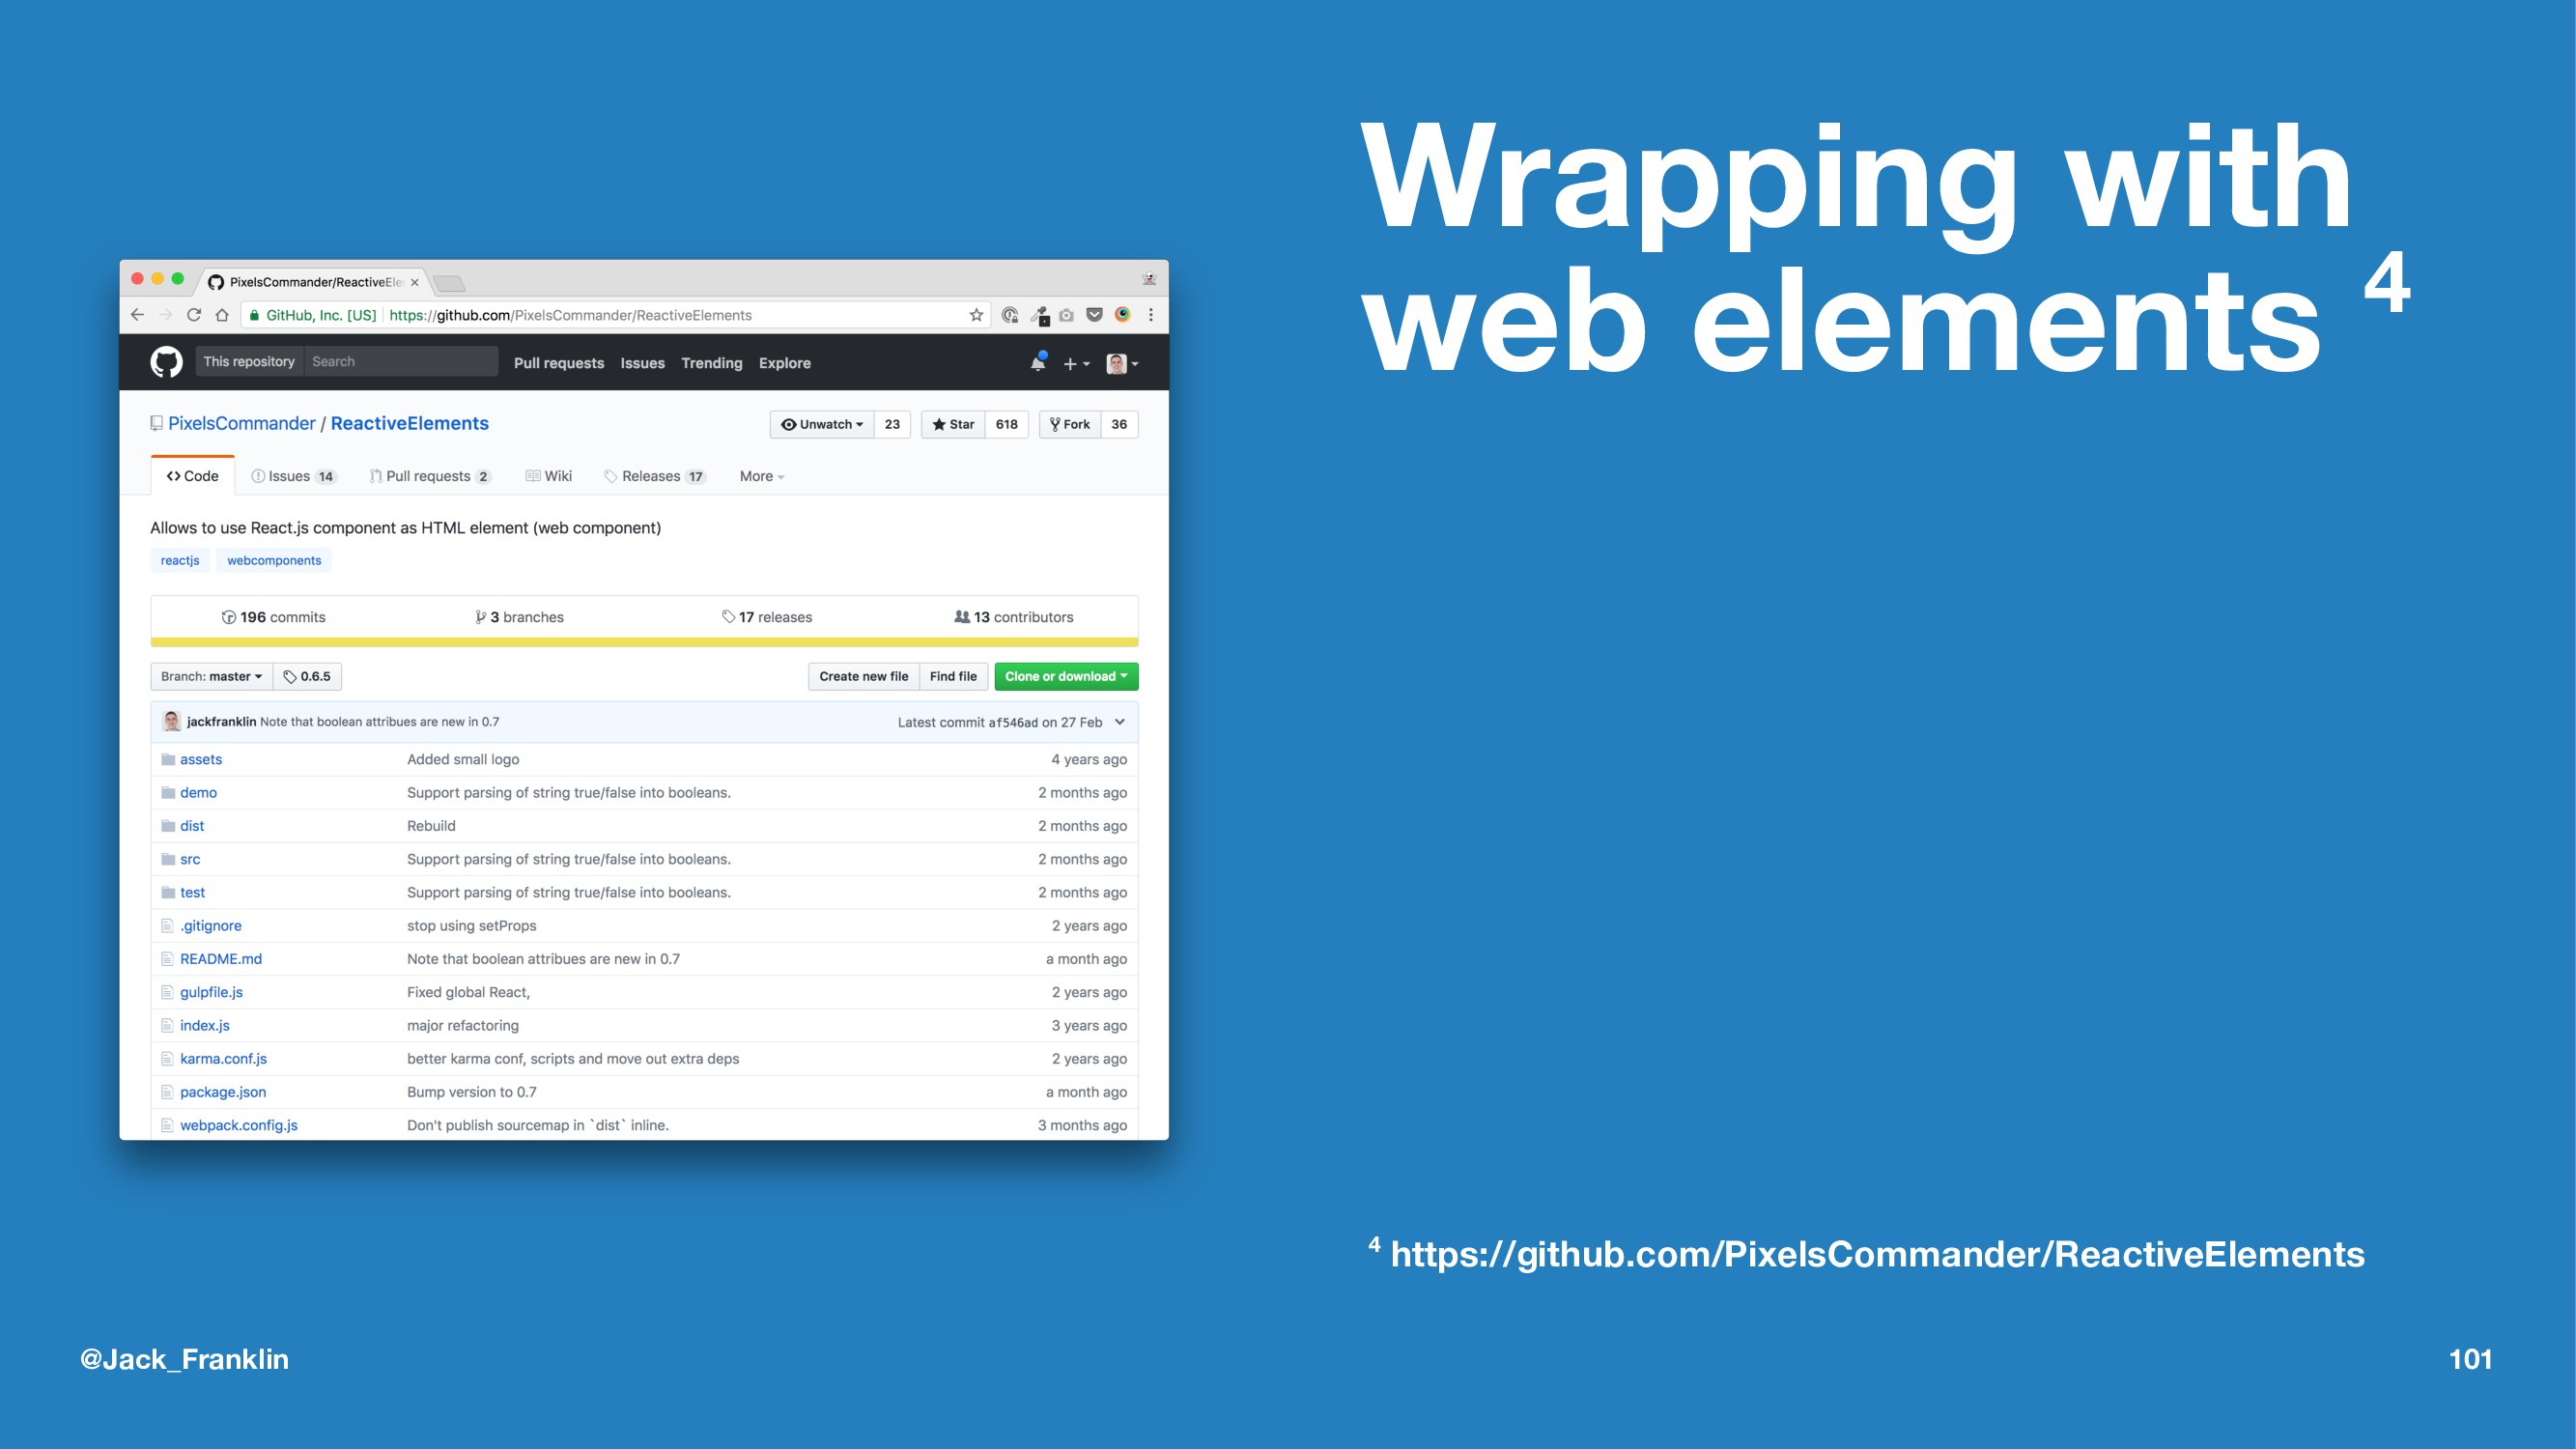 Wrapping with web elements 4 4 https://github.c...